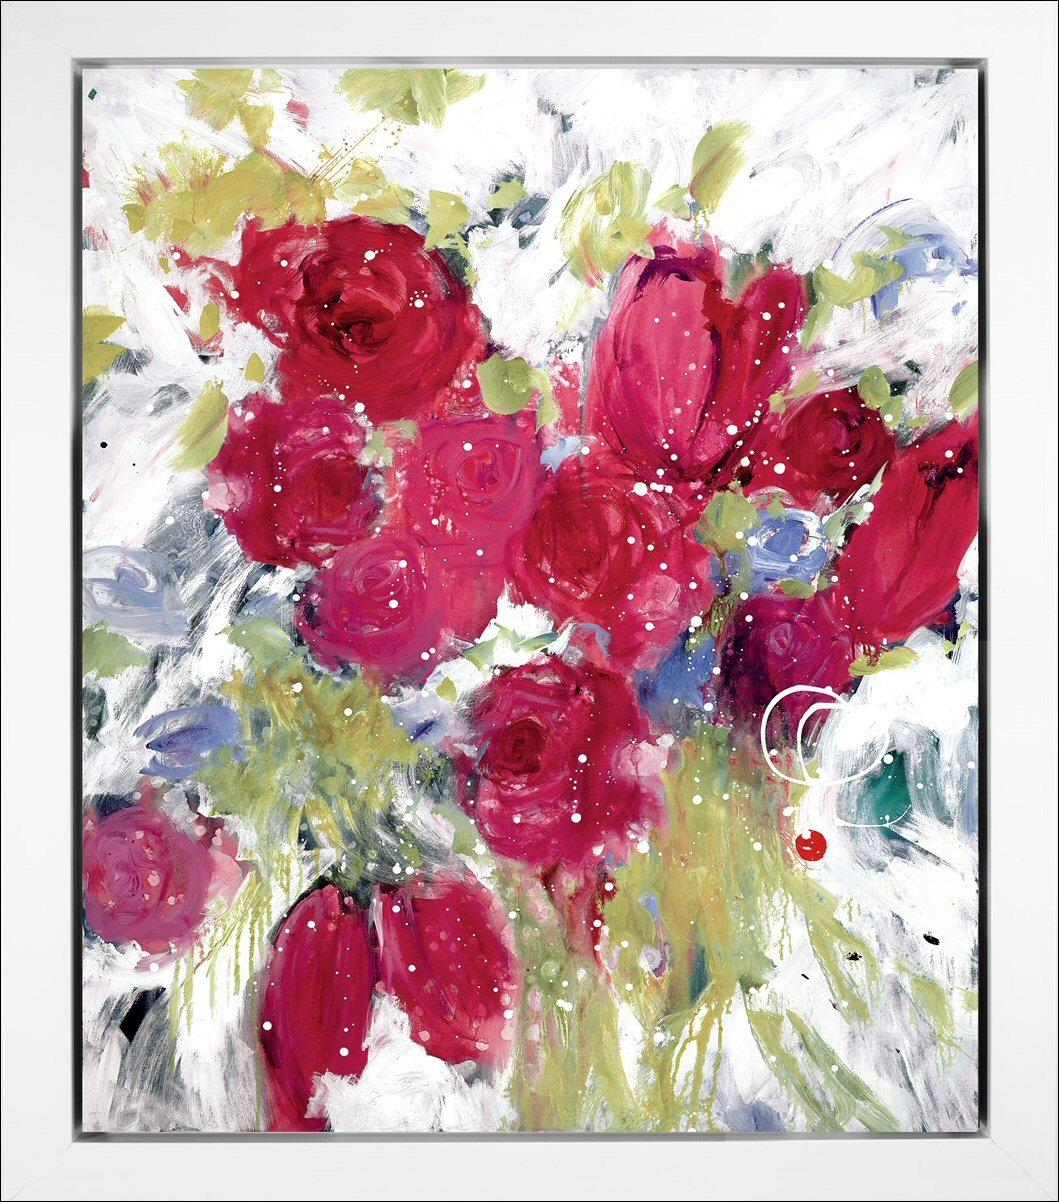 Unbound Heart by Danielle O'Connor Akiyama - canvas art print ZAKY079